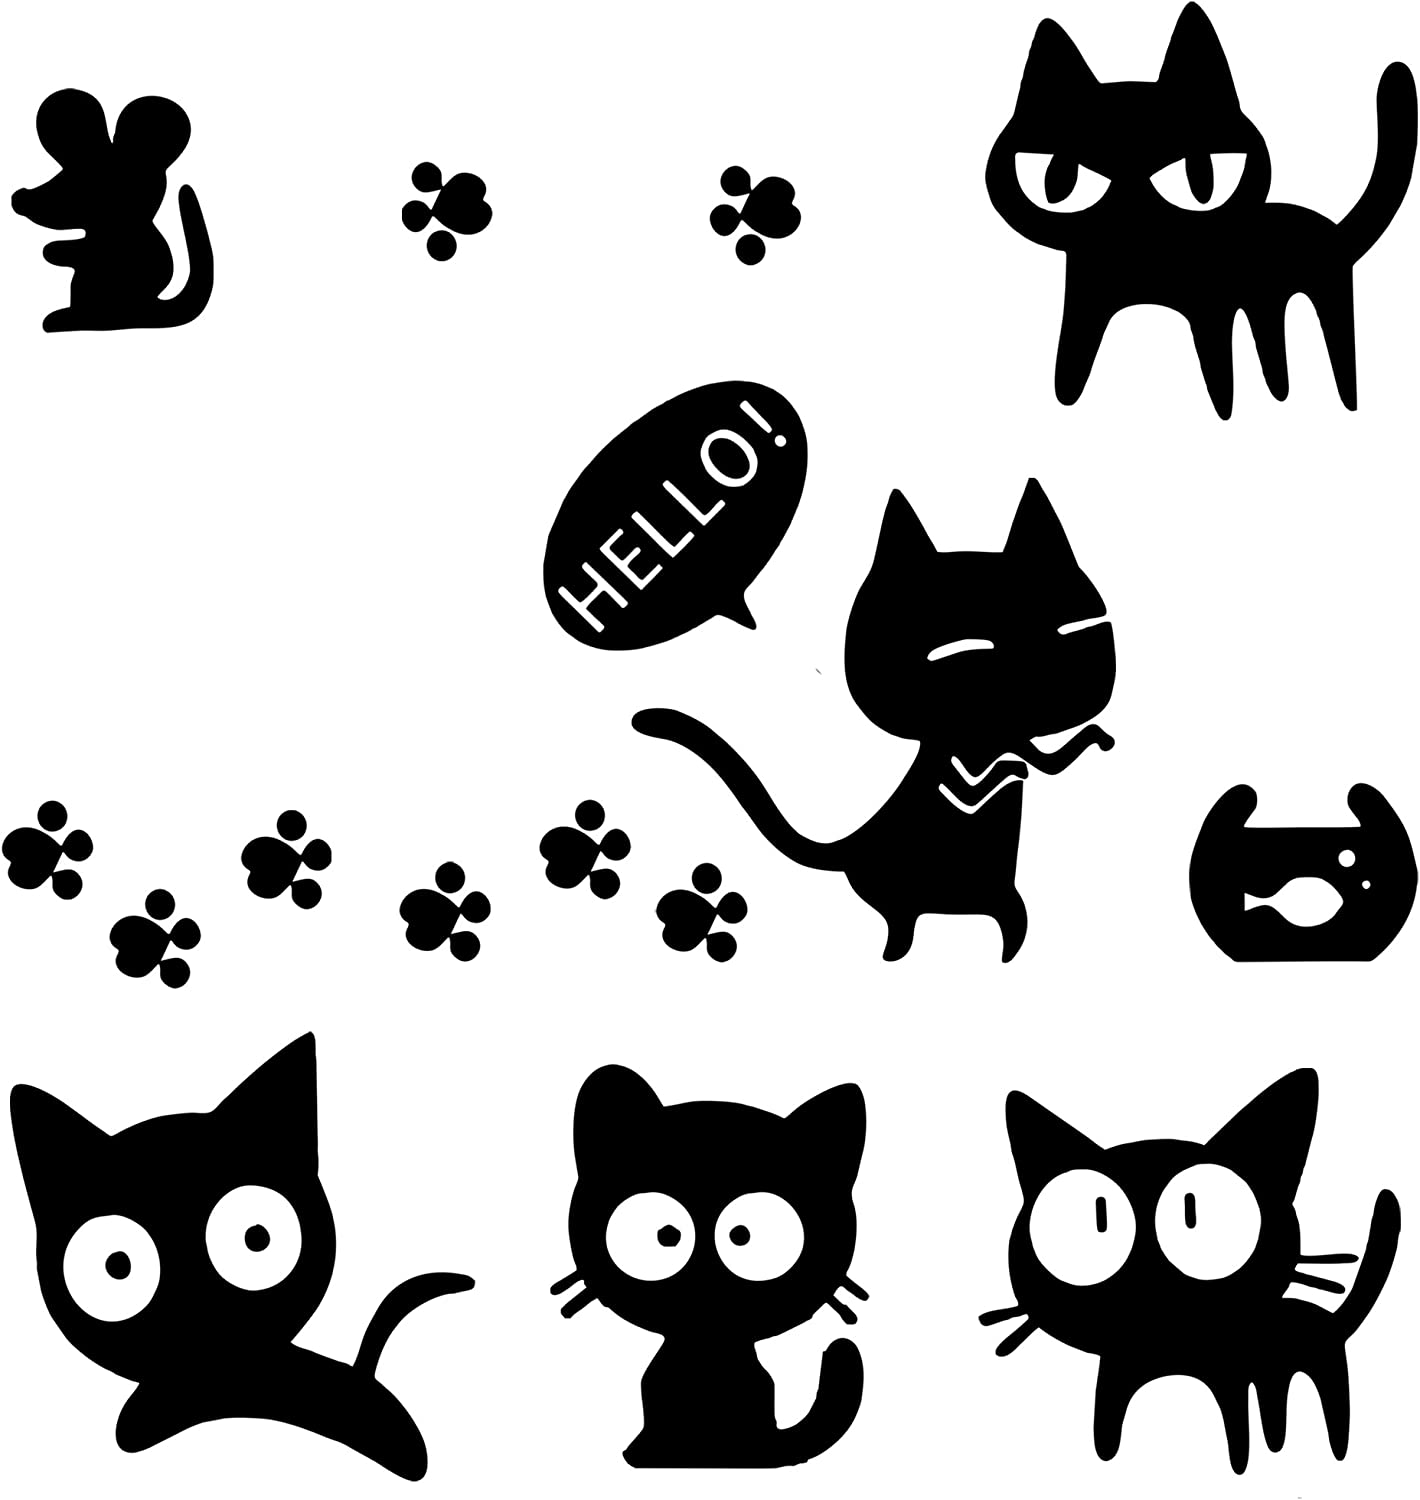 1797 Vehicle Stickers Car Decals Accessories Decorations Cute Cat Claw Mouse Rat Fish Tank PVC Funny Animal Door Bumper Laptop Windows Windshield Trunk Tailgate PC Waterproof Cool Black Pack of 7